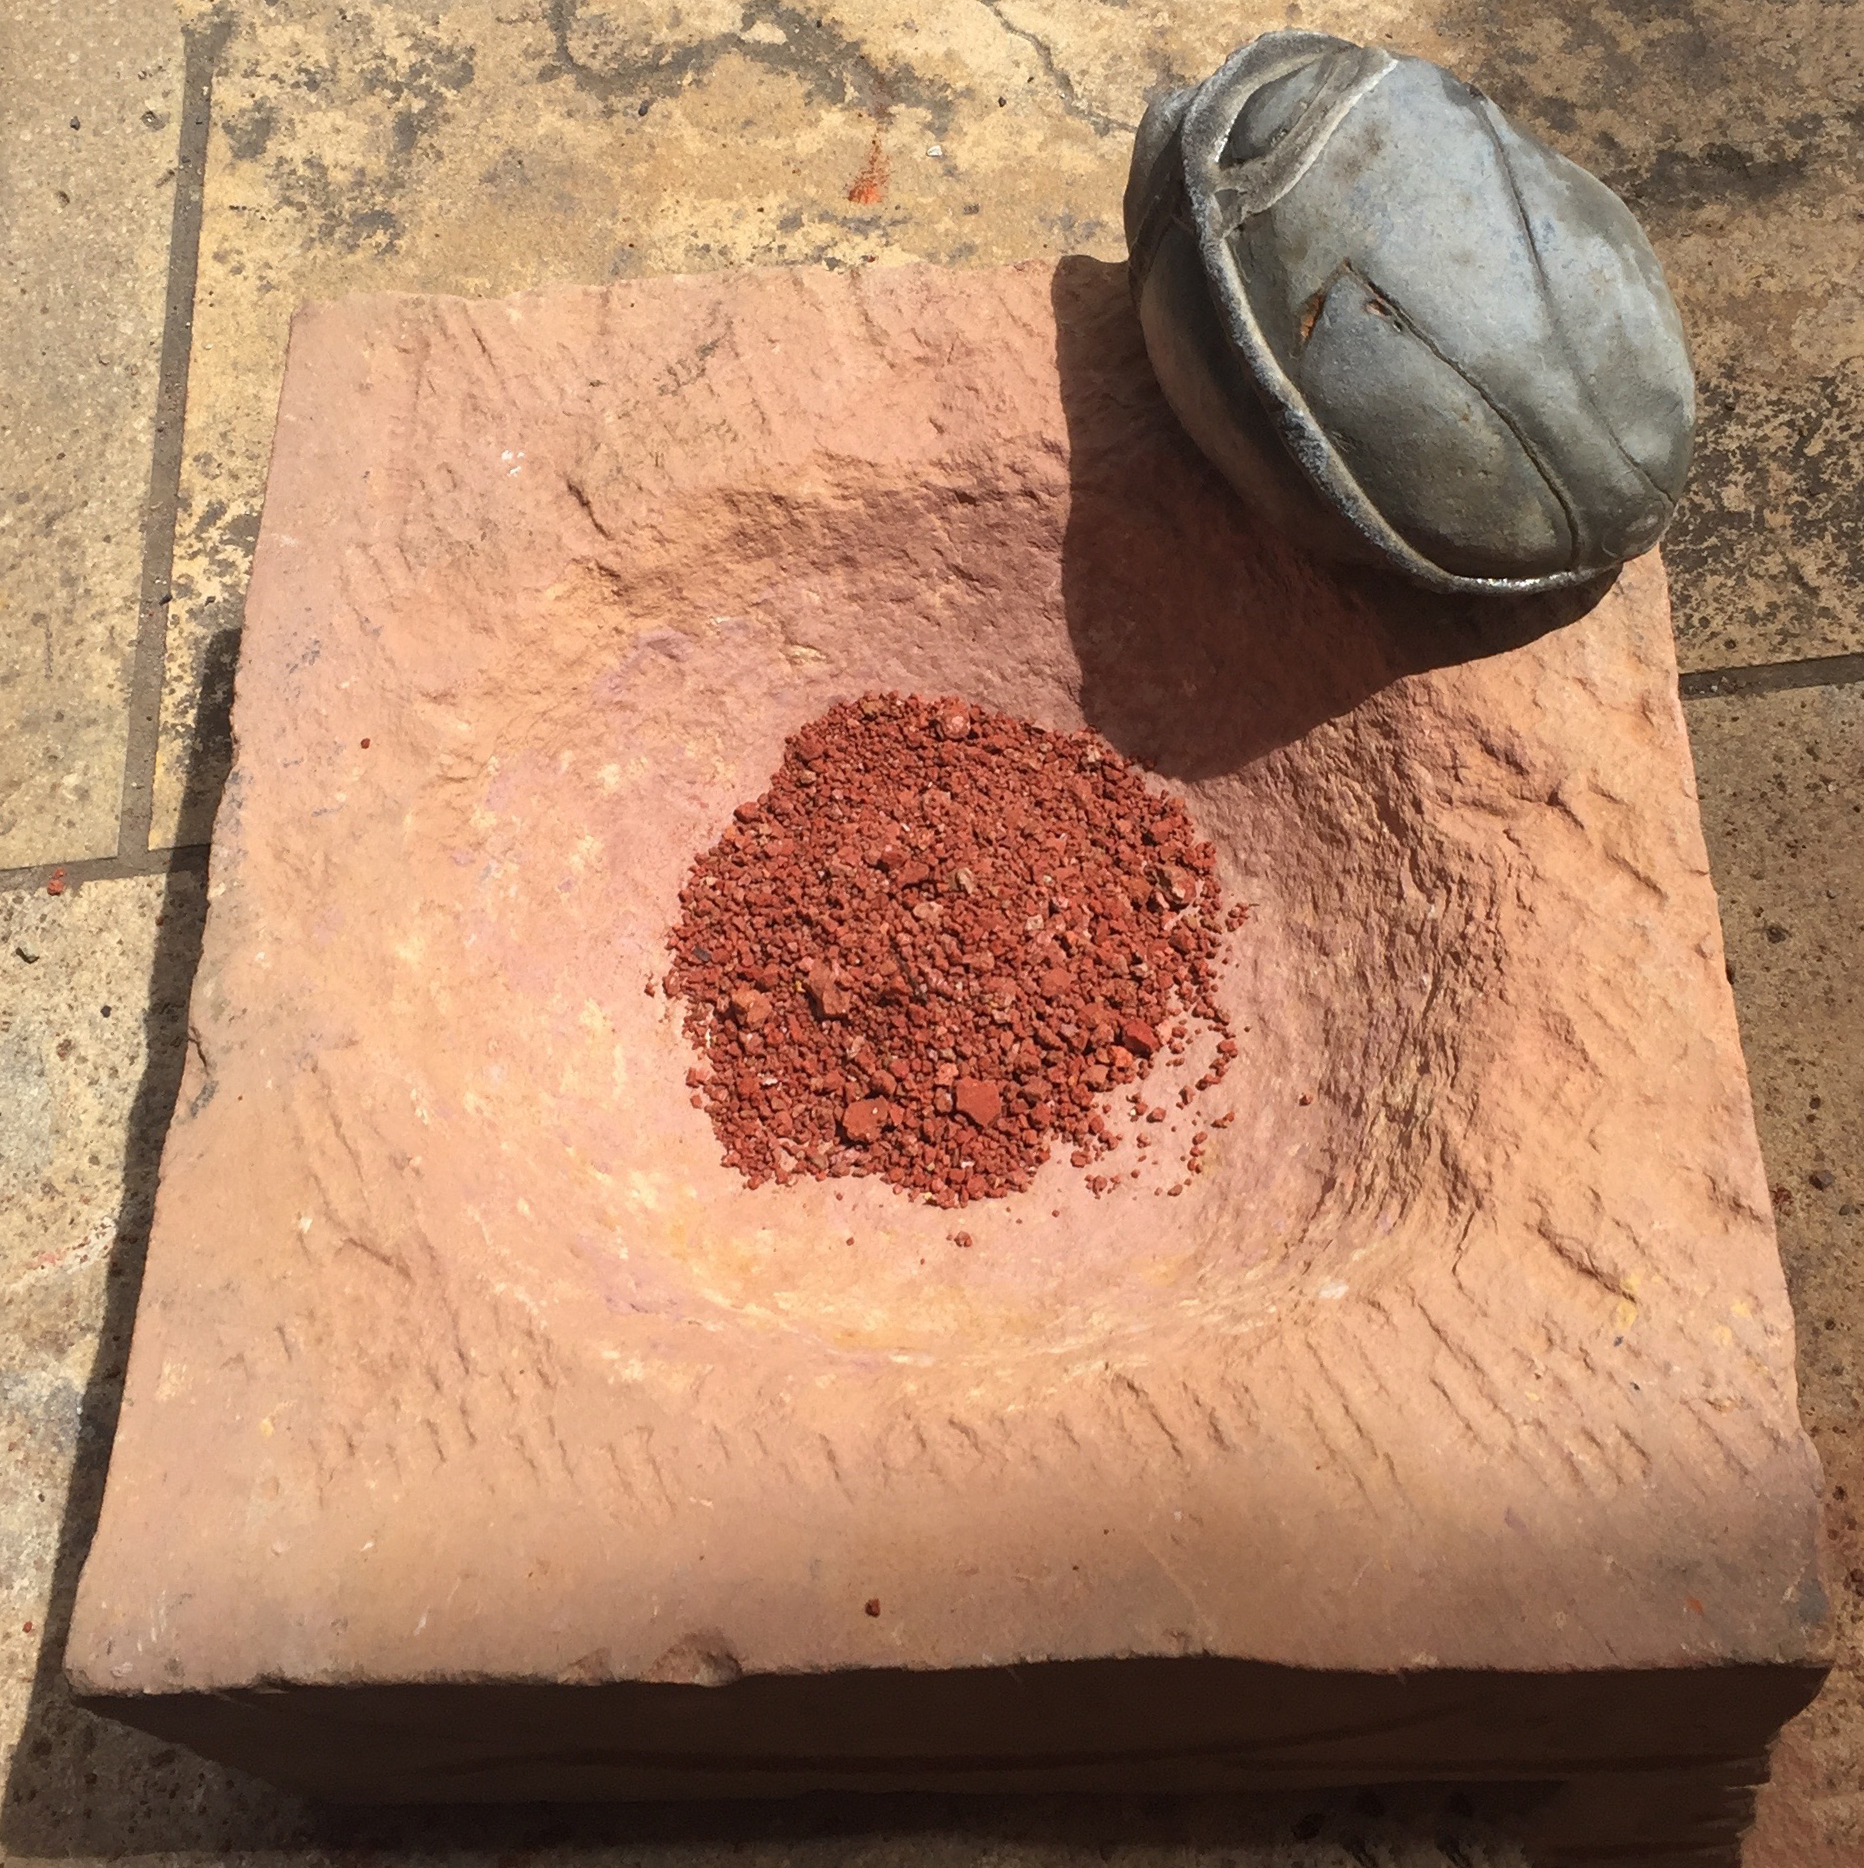 Stone mortar with bigger fossil to process bigger quantities